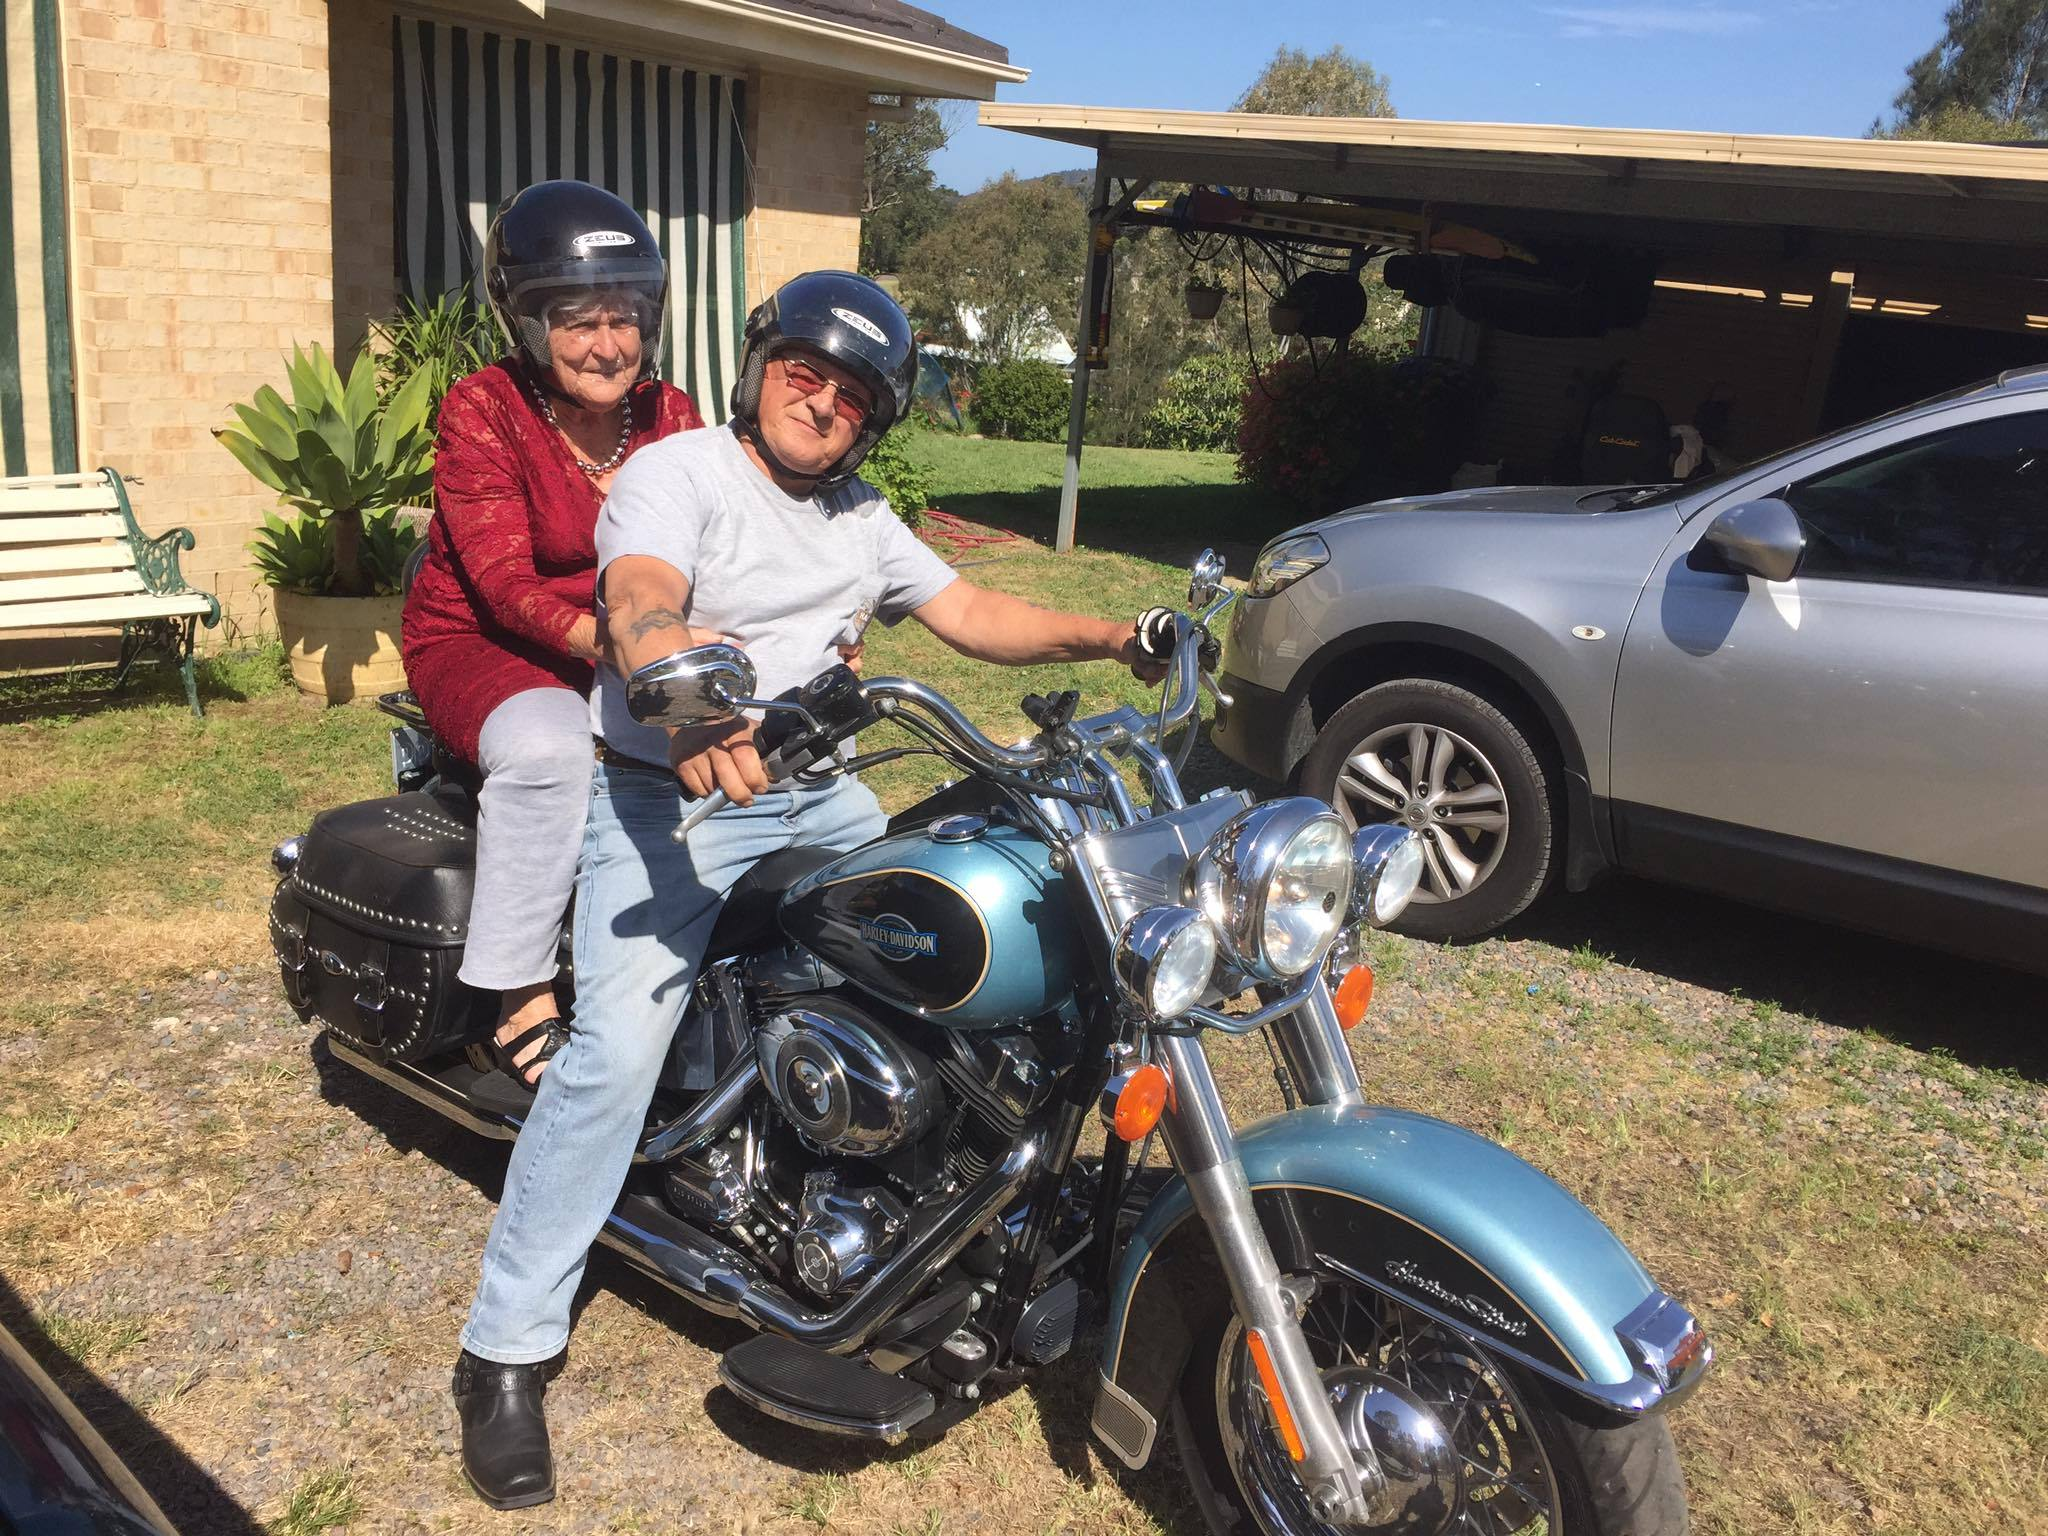 A Harley-riding 90-year-old's perspective on life